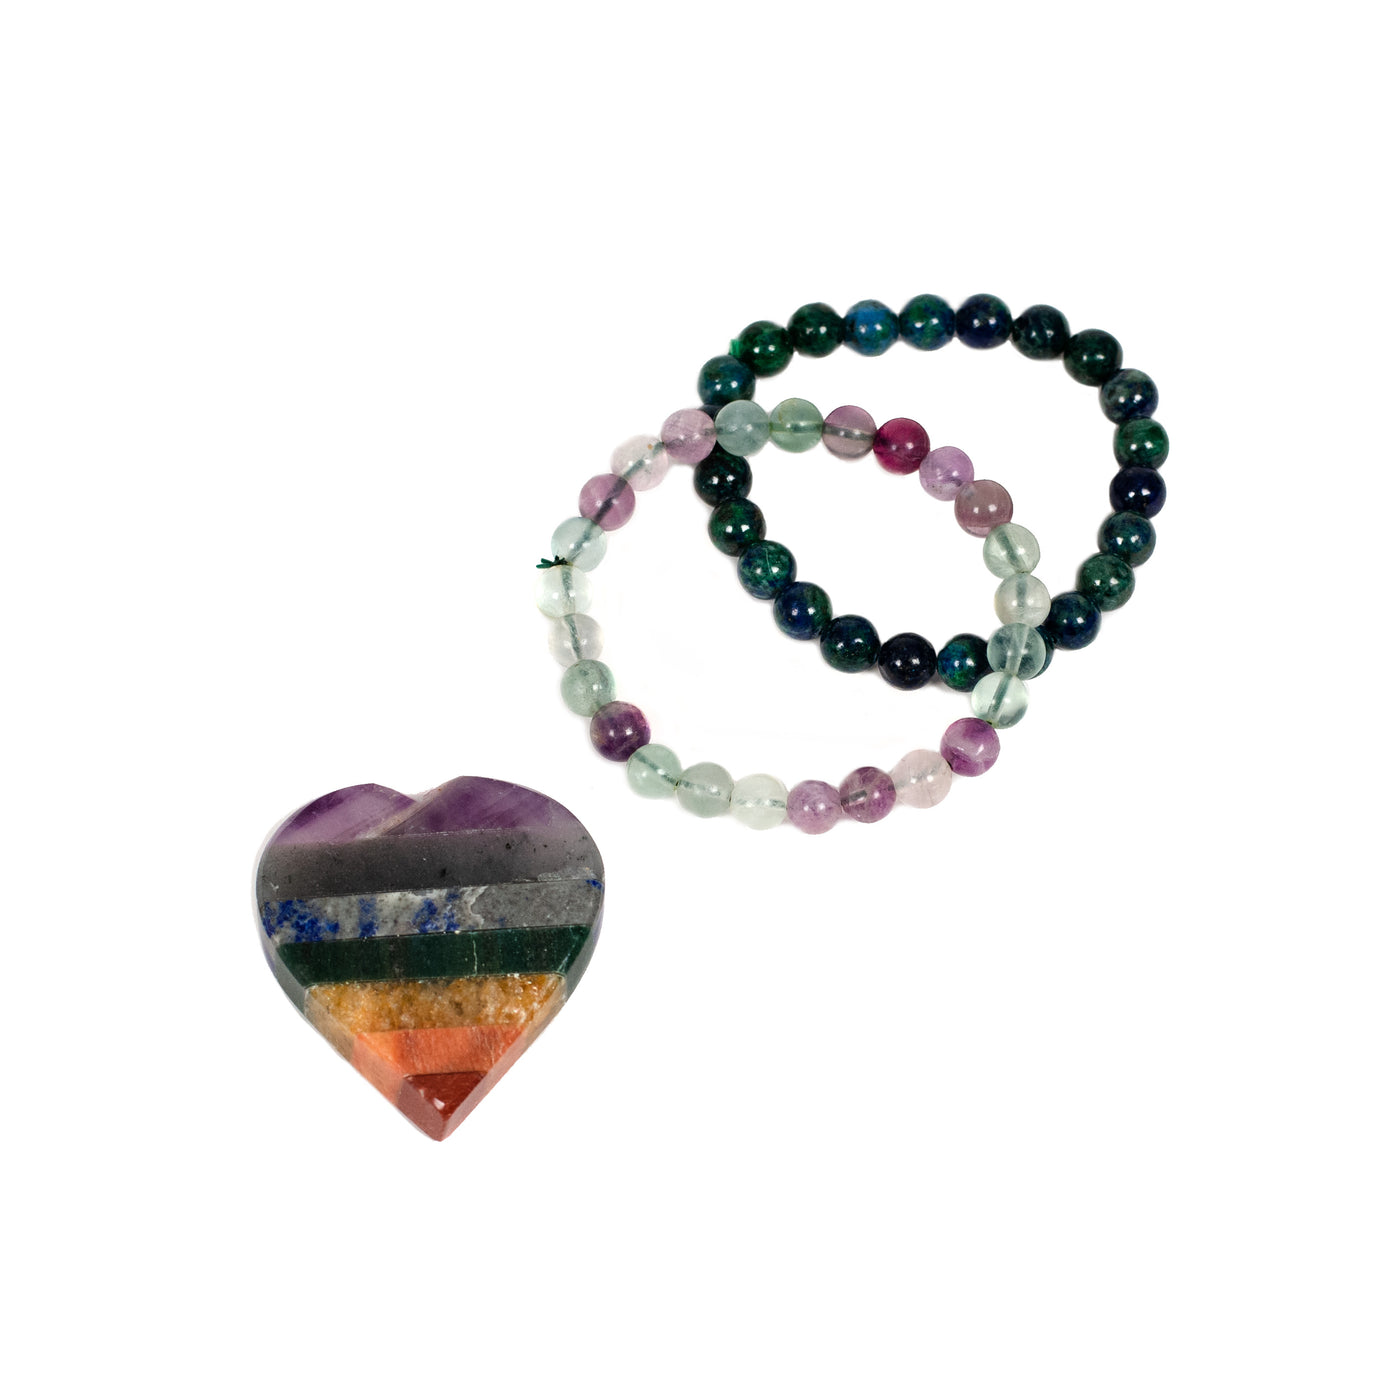 Energy Cleansing Bracelet Set - Sympathy Crystal - Healing Hearts Journey | Sympathy Gifts & Condolences Keepsakes